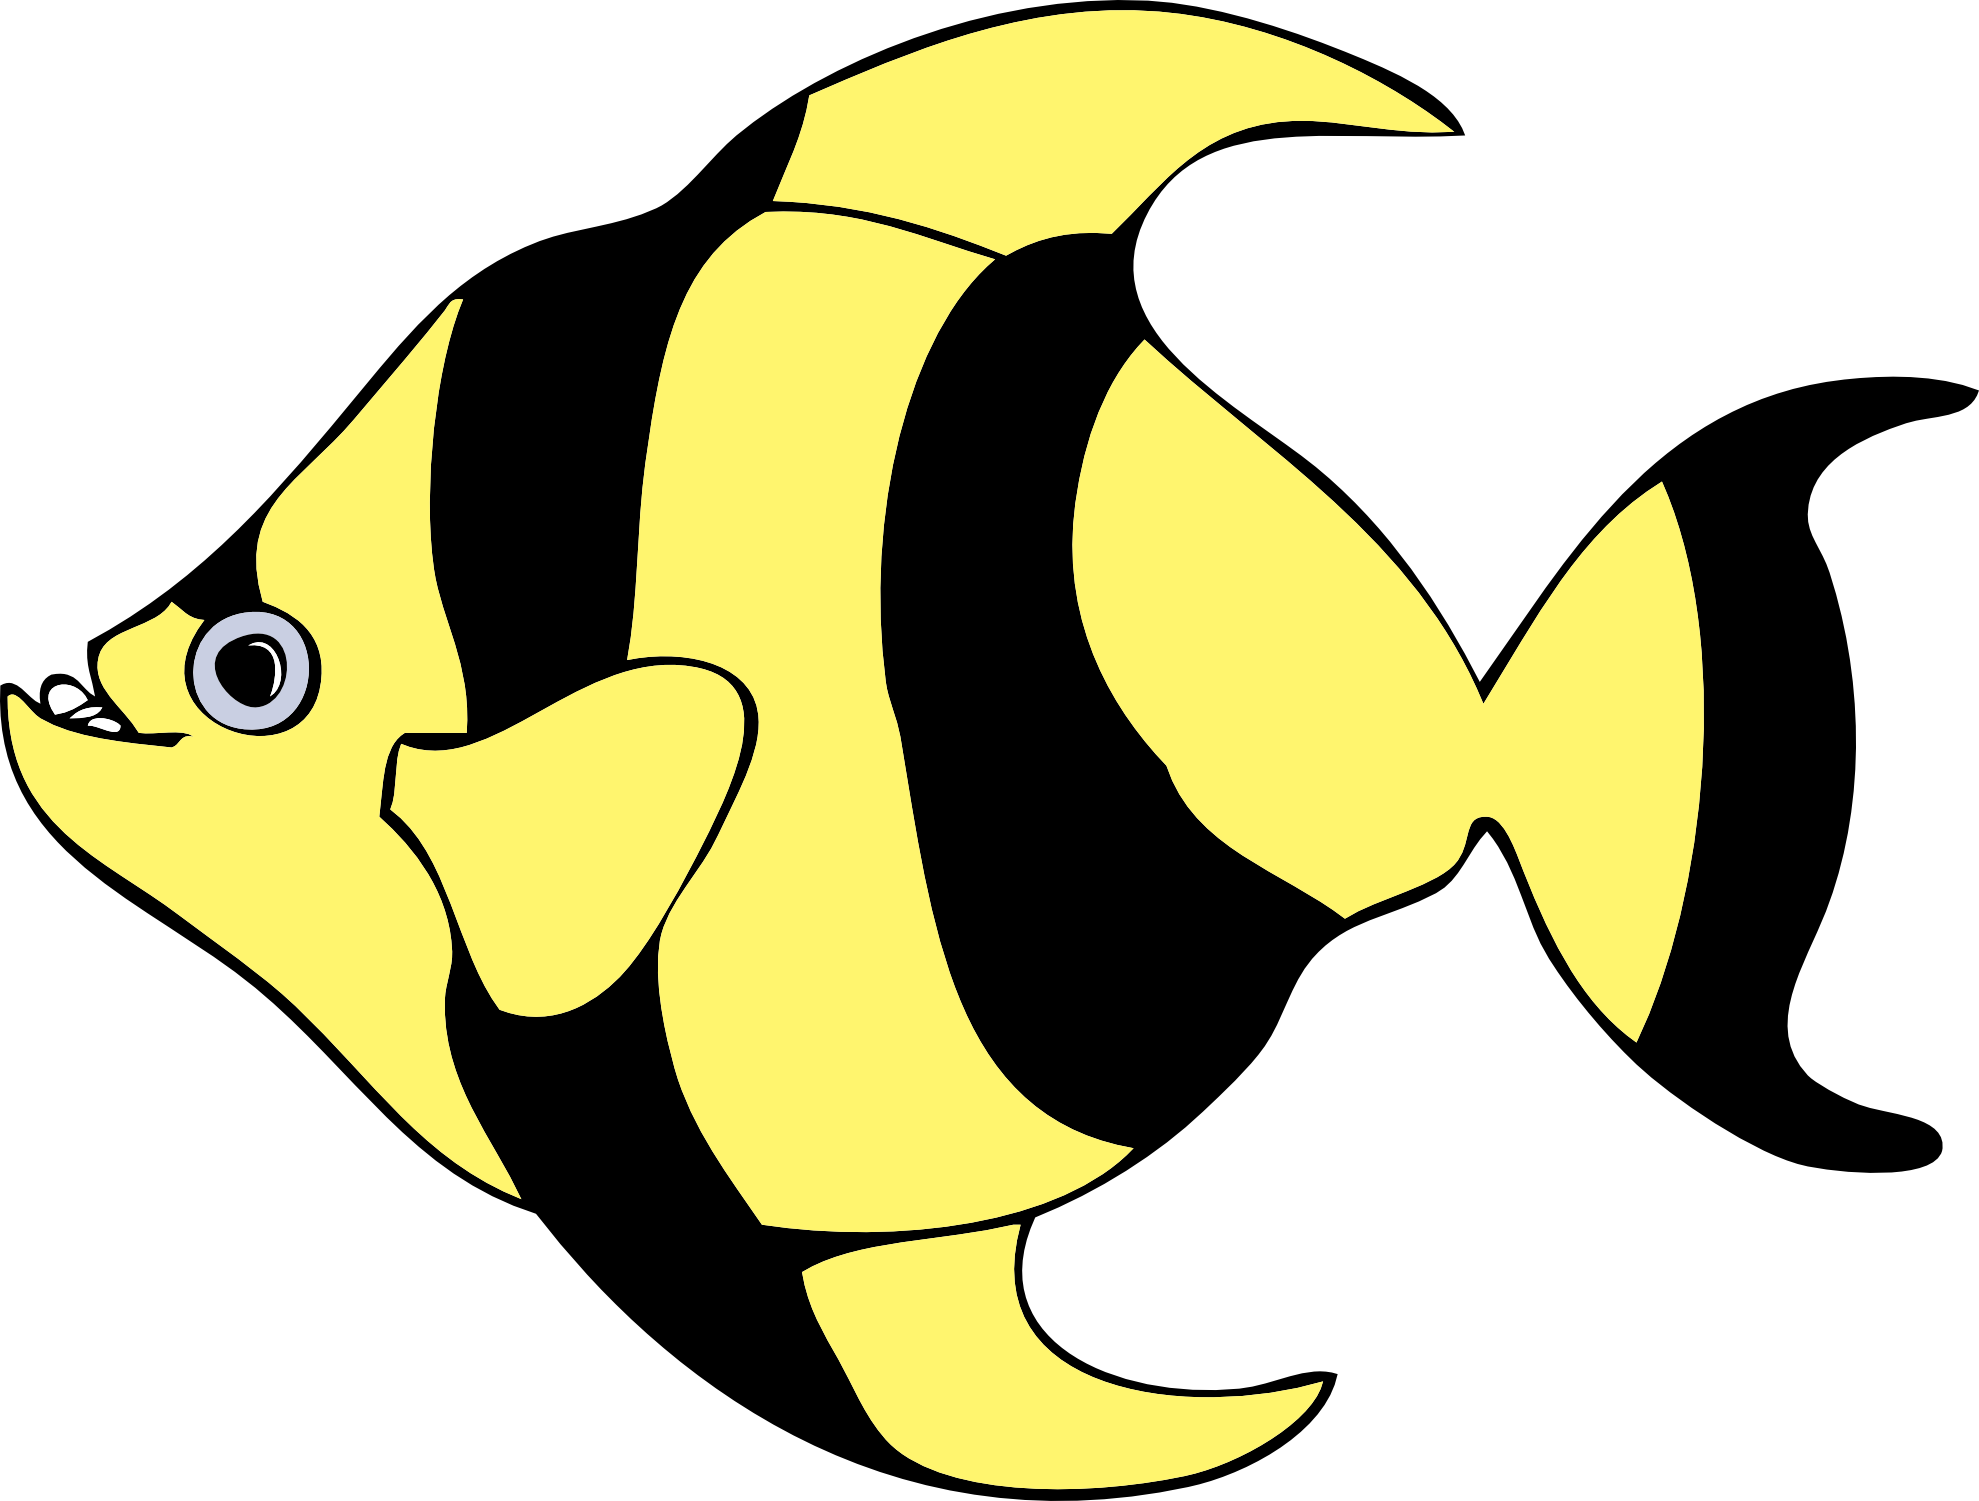 Fly fish clipart. Coral reef panda free